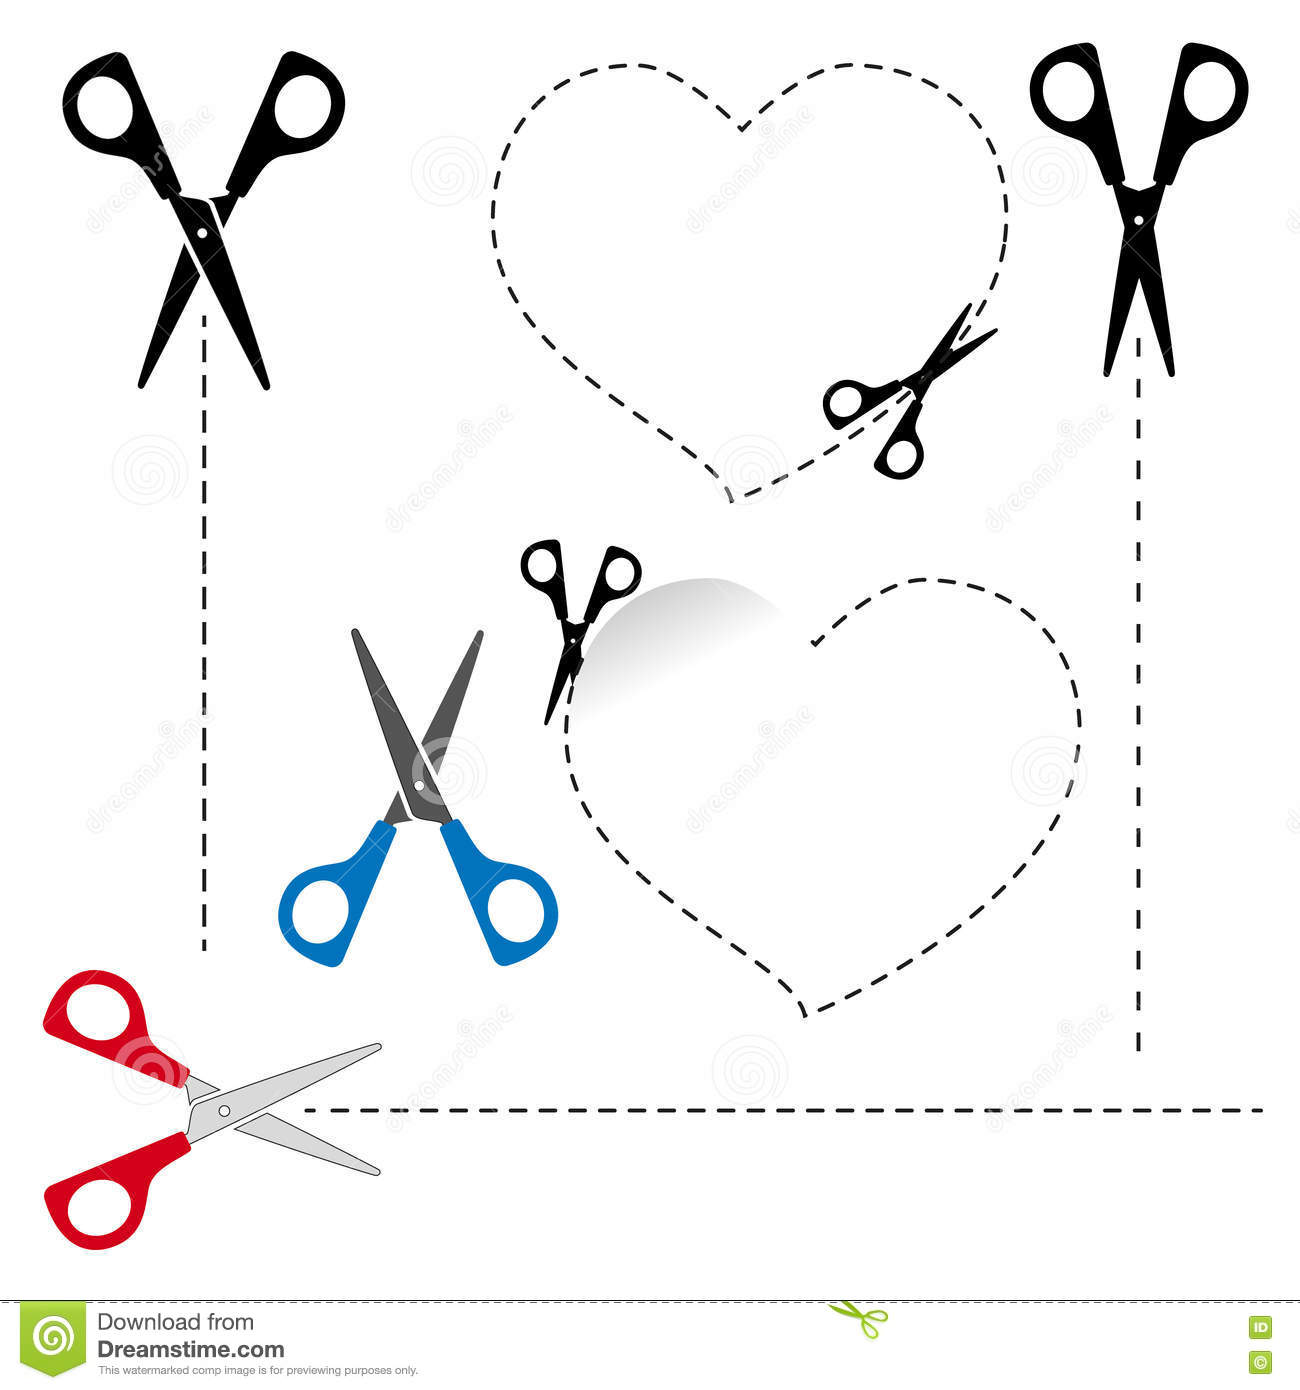 Scissors Cut Out The Shape. The Dotted Line. Stock Vector ...